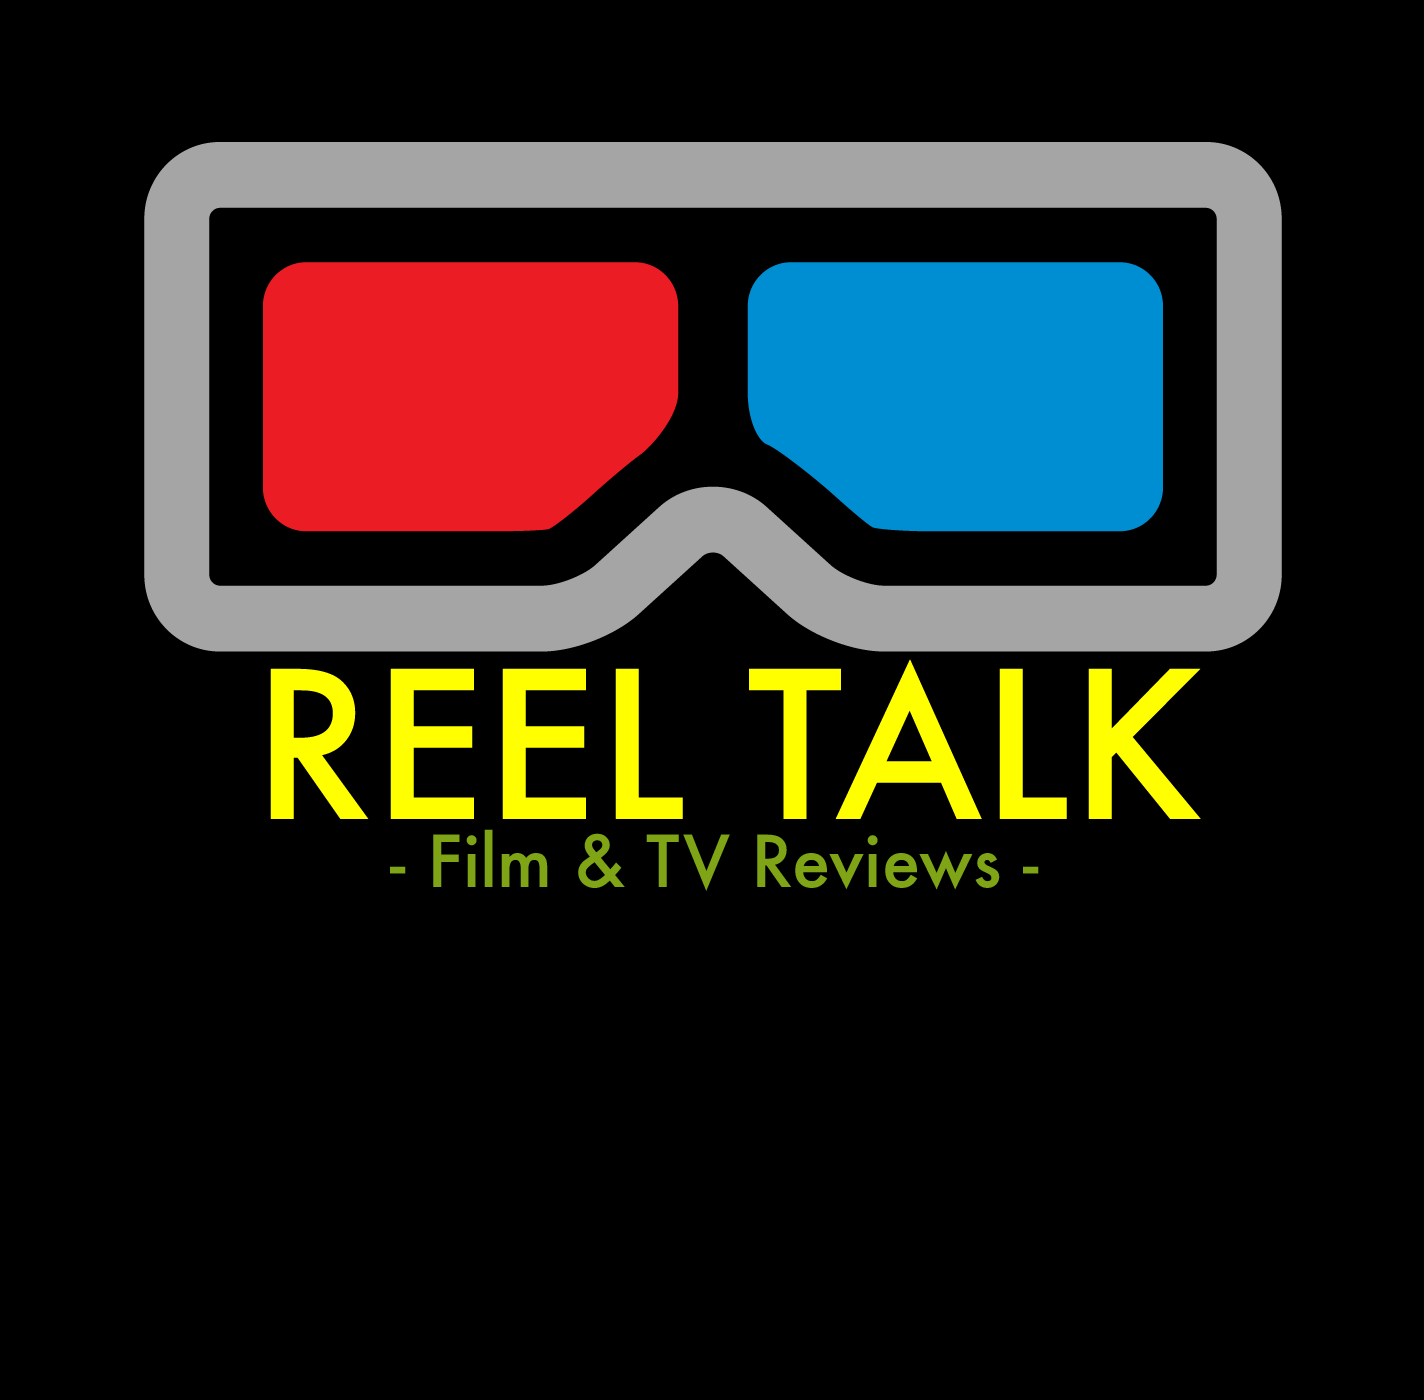 Reel Talk EP2 - Deadpool 2 Review & Discussion